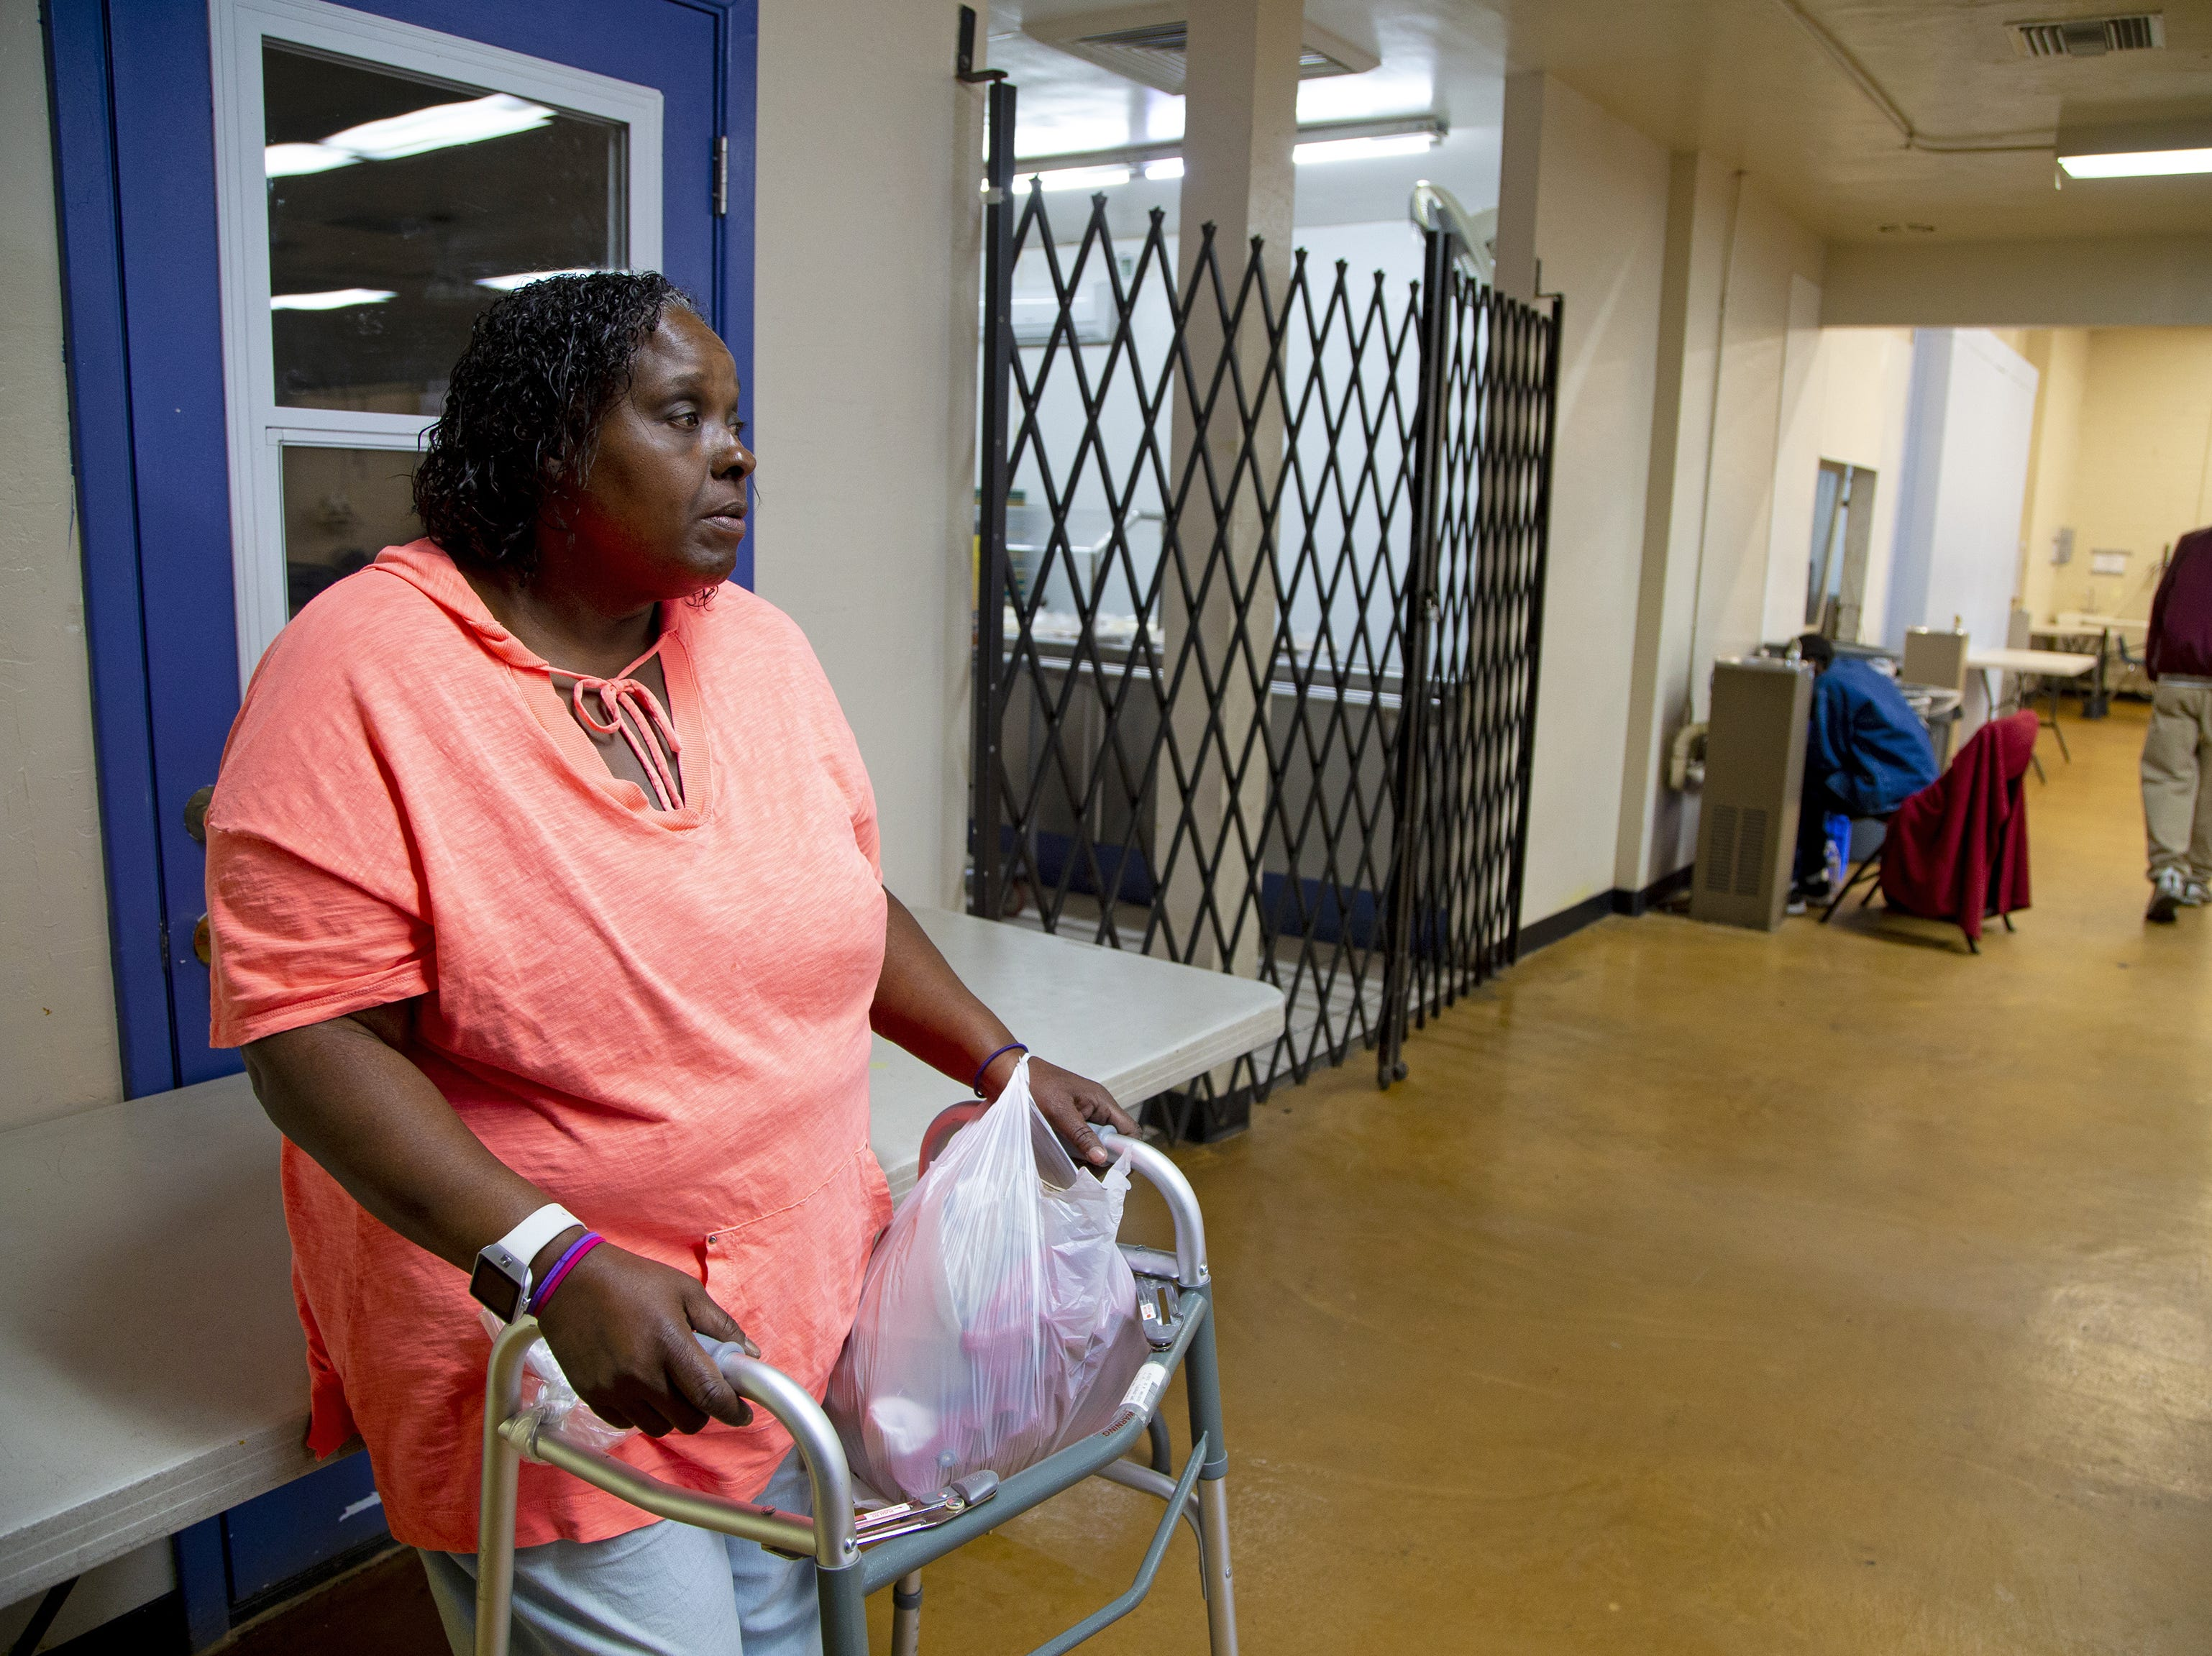 Romona Stevenson, 55, got pneumonia and went to the county hospital, Maricopa Medical Center, unable to breathe. After a week taking antibiotics, breathing treatments and hooked up to an oxygen tank, the hospital discharged her and paid for a cab to take her to the downtown Phoenix homeless shelter. There was no bed available, so she sat two nights at a bus stop outside McDonald's.  Stevenson is able to get food, clothing and a shower from Andre House of Hospitality homeless center in Phoenix.